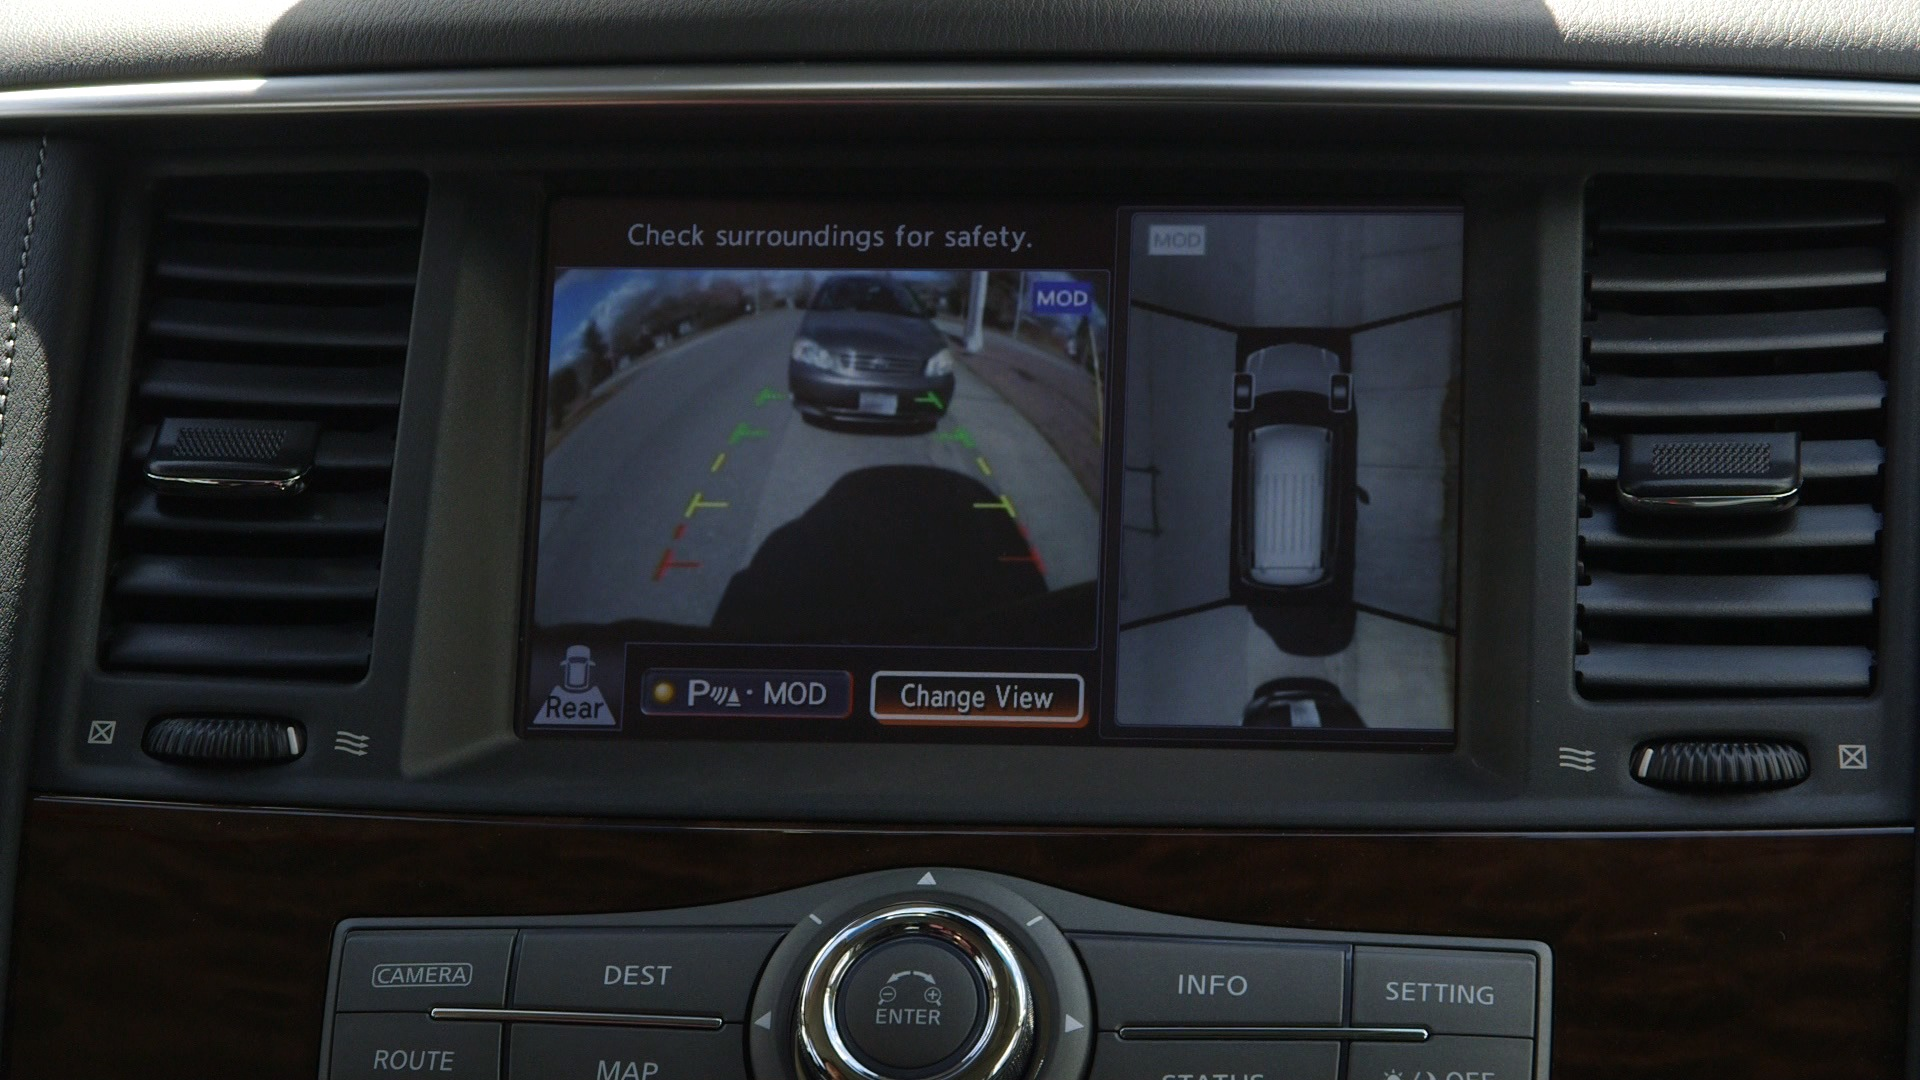 Driving Innovation: Around View Monitoring